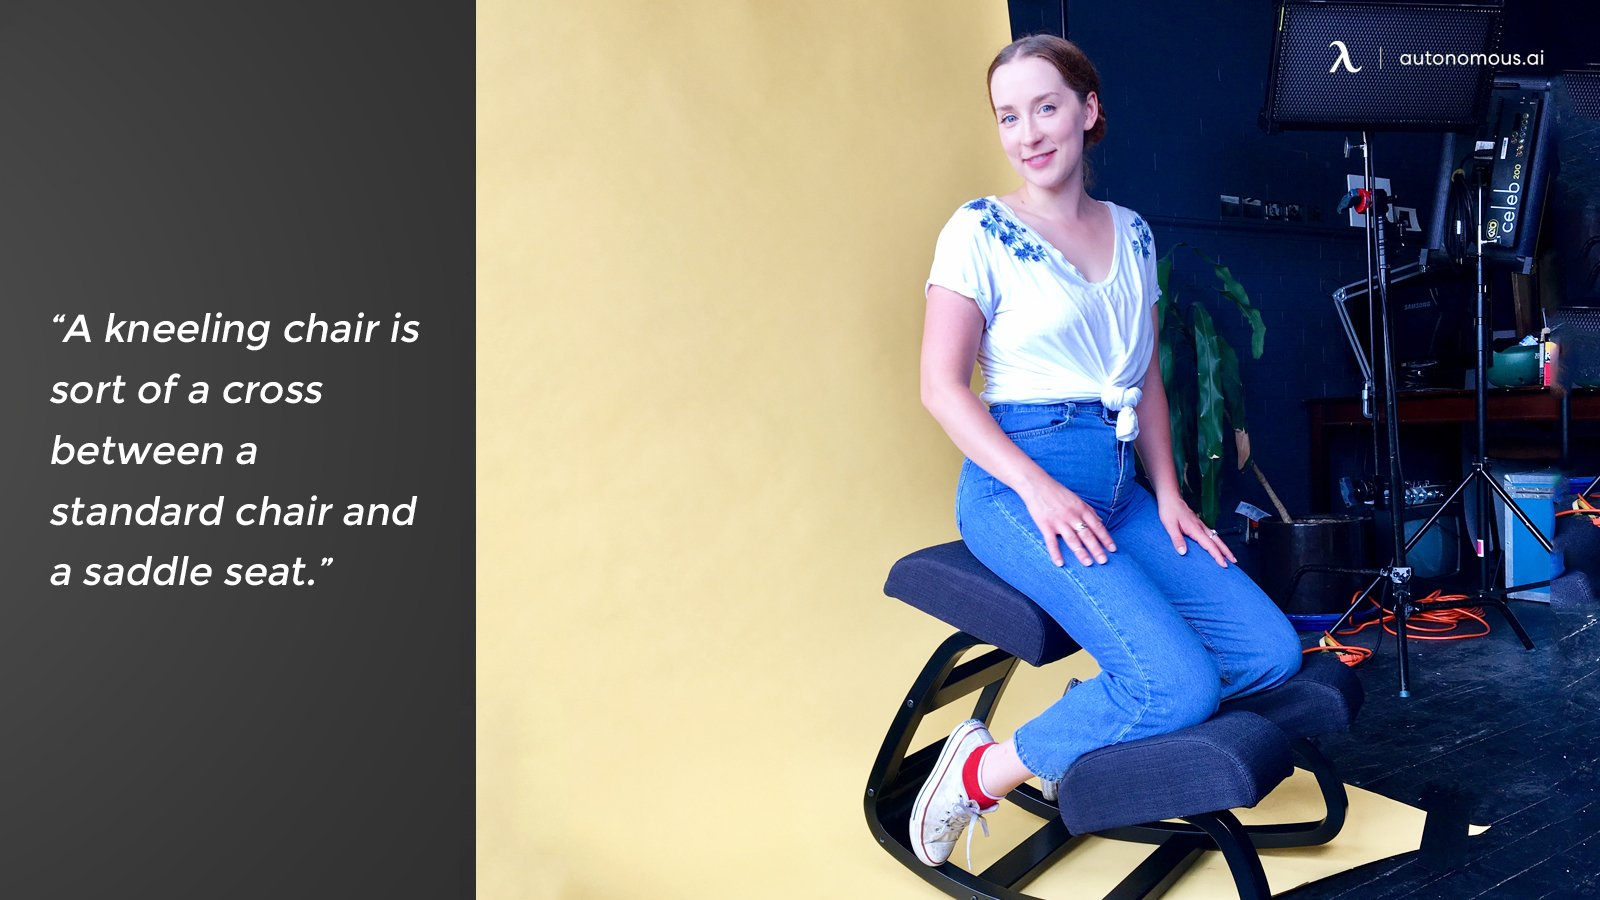 Kneeling chair quote